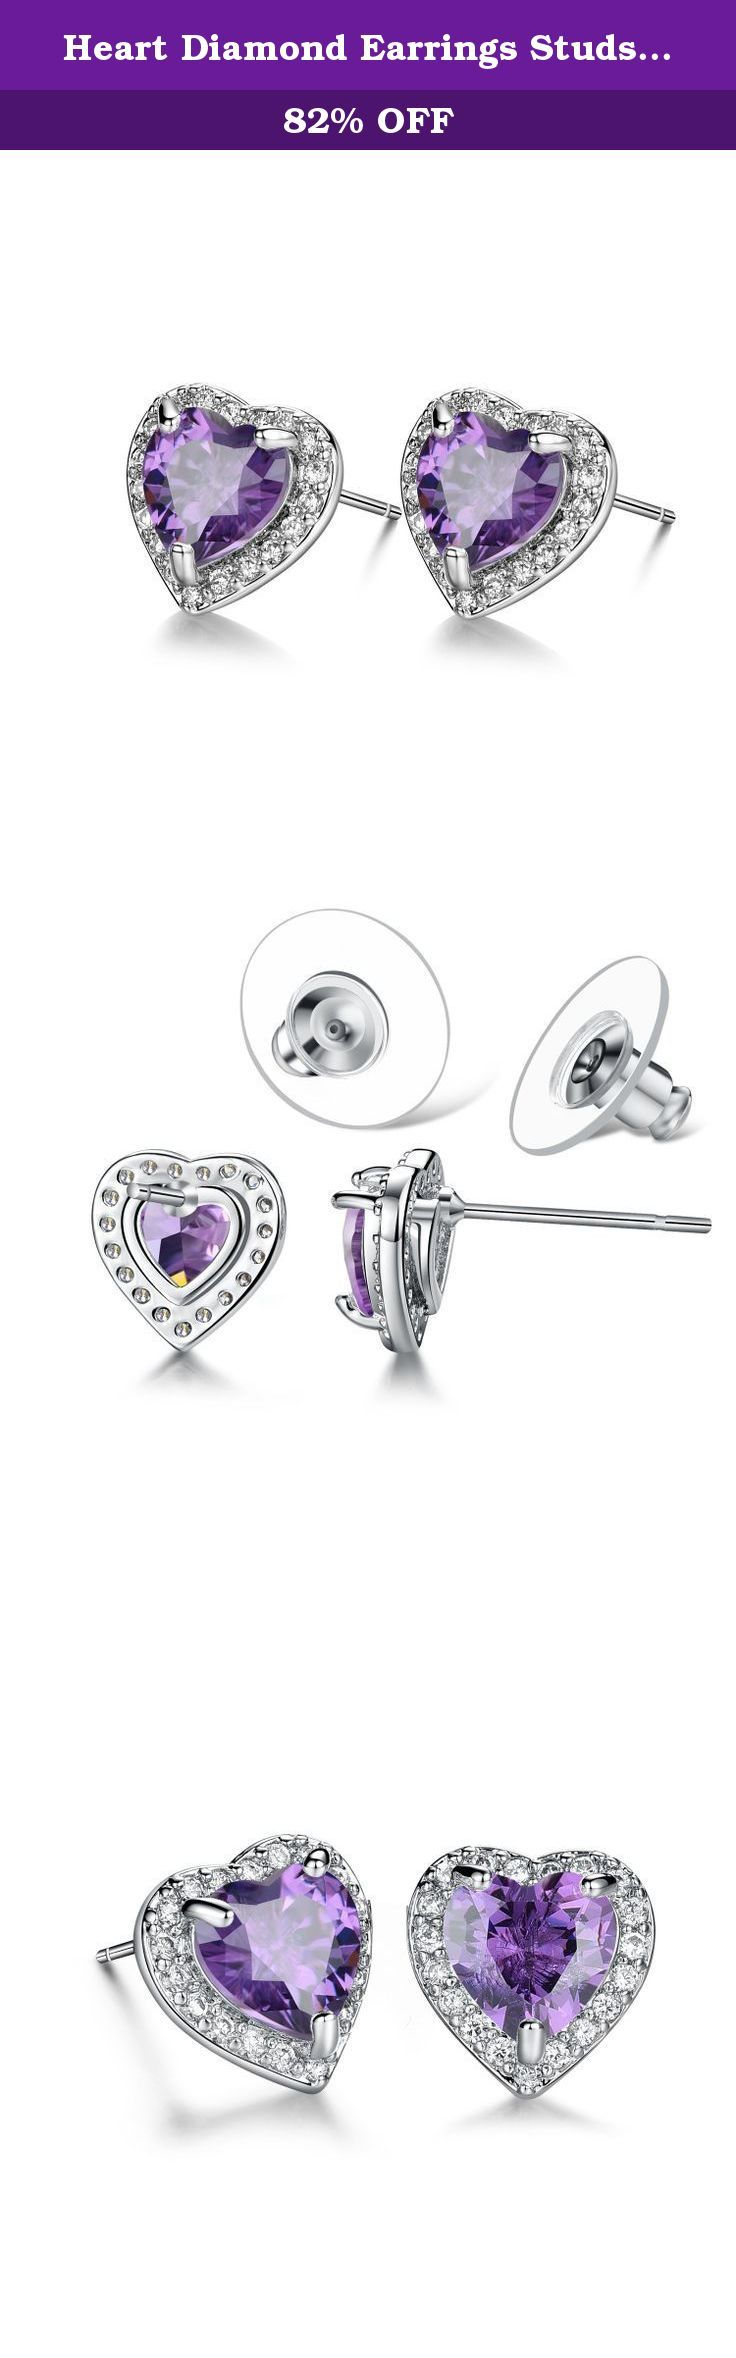 """Heart Diamond Earrings Studs, Purple Heart Cubic Zirconia Stud Earrings - Christmas Gifts for Women, Girls, Teen Girls. Heart Earrings for Women, Girls, Teen Girls, Mother, Mom, very good Christmas Gifts Idea for Your Love. Christmas 2016 Gifts for Women, Girlfriend, Mom. Christmas Gifts for Girls. We have confidence that : with the same price, we have the best quality; with the same quality, we have the best price. Purple Heart Earrings studs Specifications: 0.4x0.4"""", Main Stone: AAA…"""